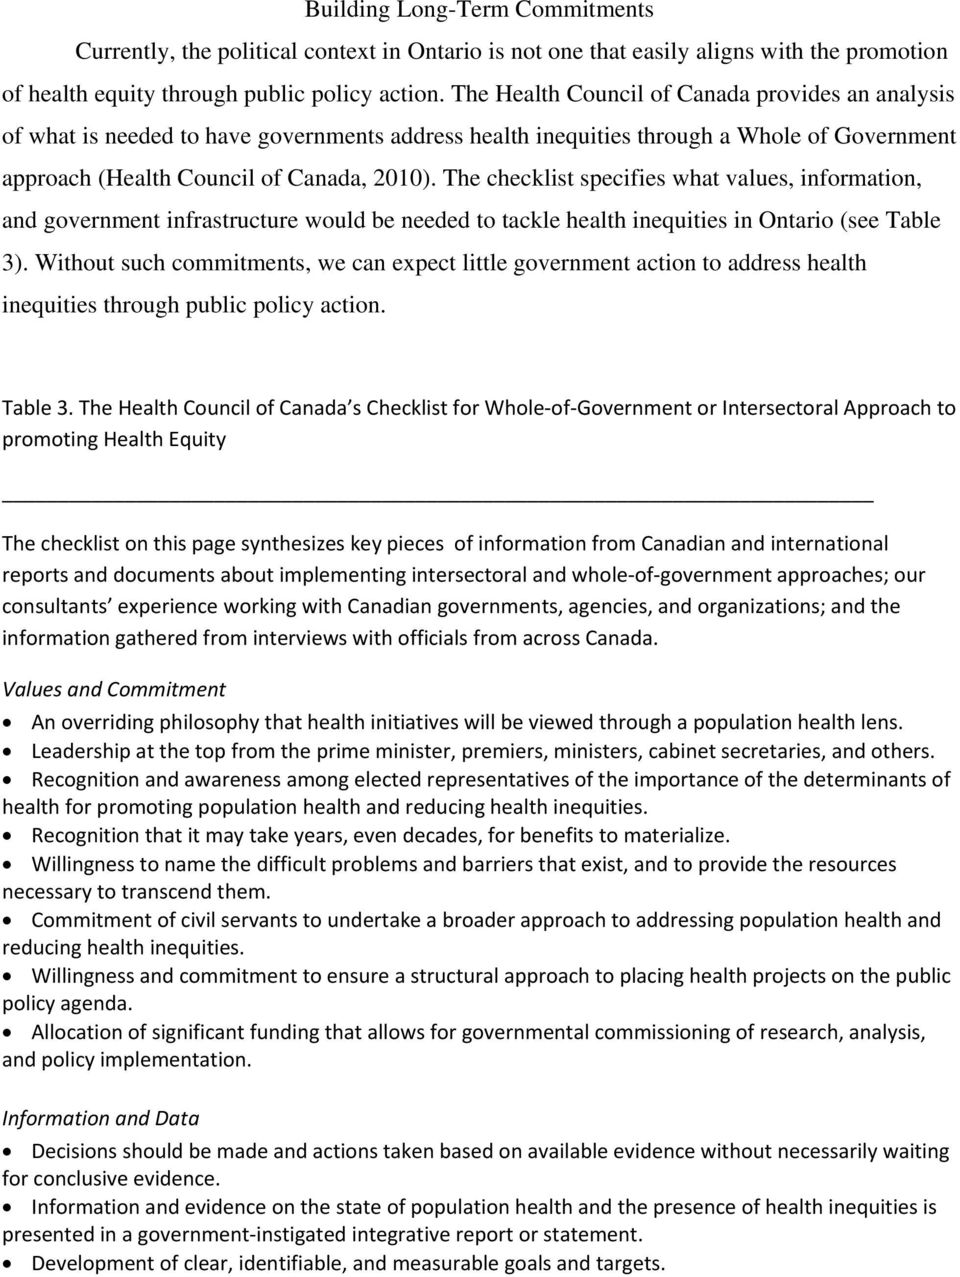 The checklist specifies what values, information, and government infrastructure would be needed to tackle health inequities in Ontario (see Table 3).